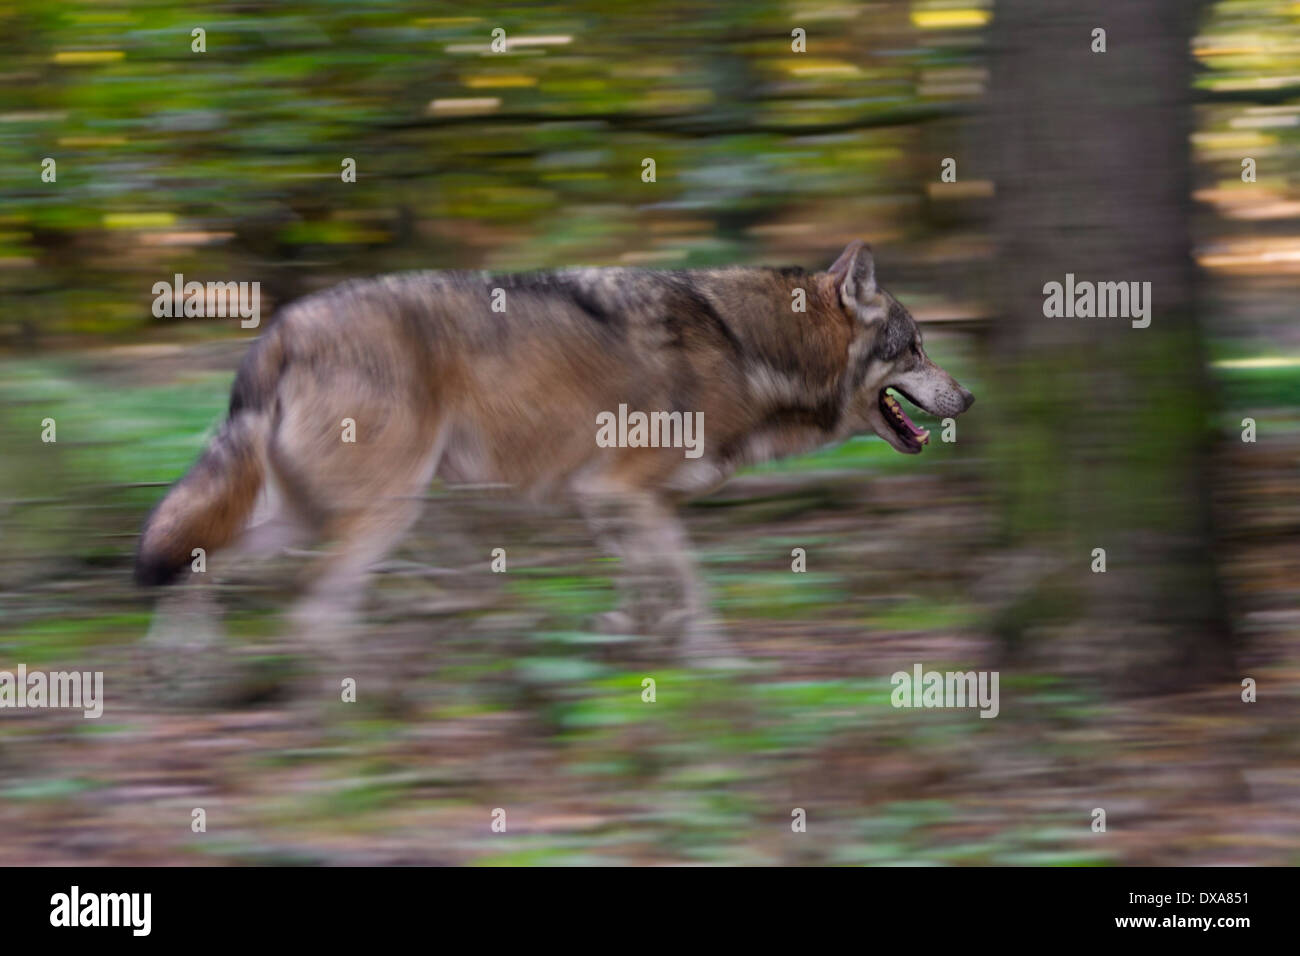 Eurasian wolf (Canis lupus lupus) running in forest showing motion blur - Stock Image